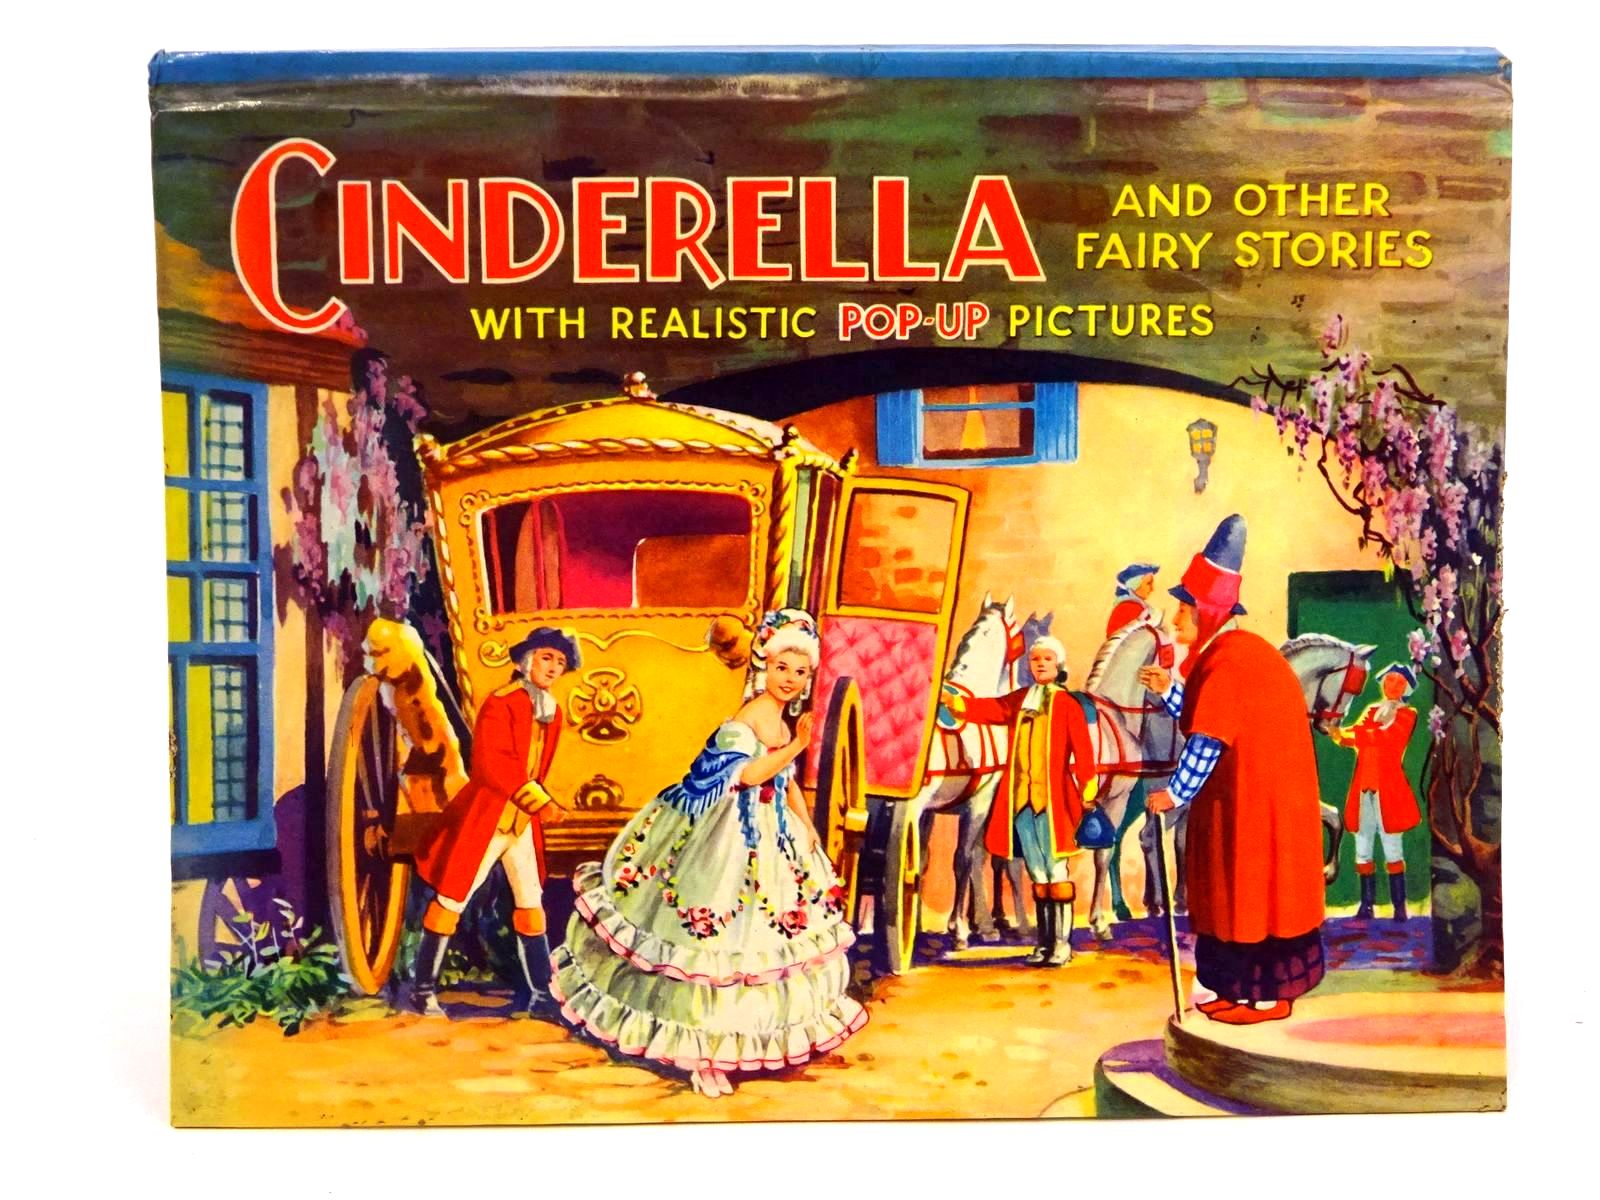 Photo of CINDERELLA AND OTHER FAIRY STORIES WITH REALISTIC POP-UP PICTURES published by Purnell & Sons, Ltd. (STOCK CODE: 1318251)  for sale by Stella & Rose's Books